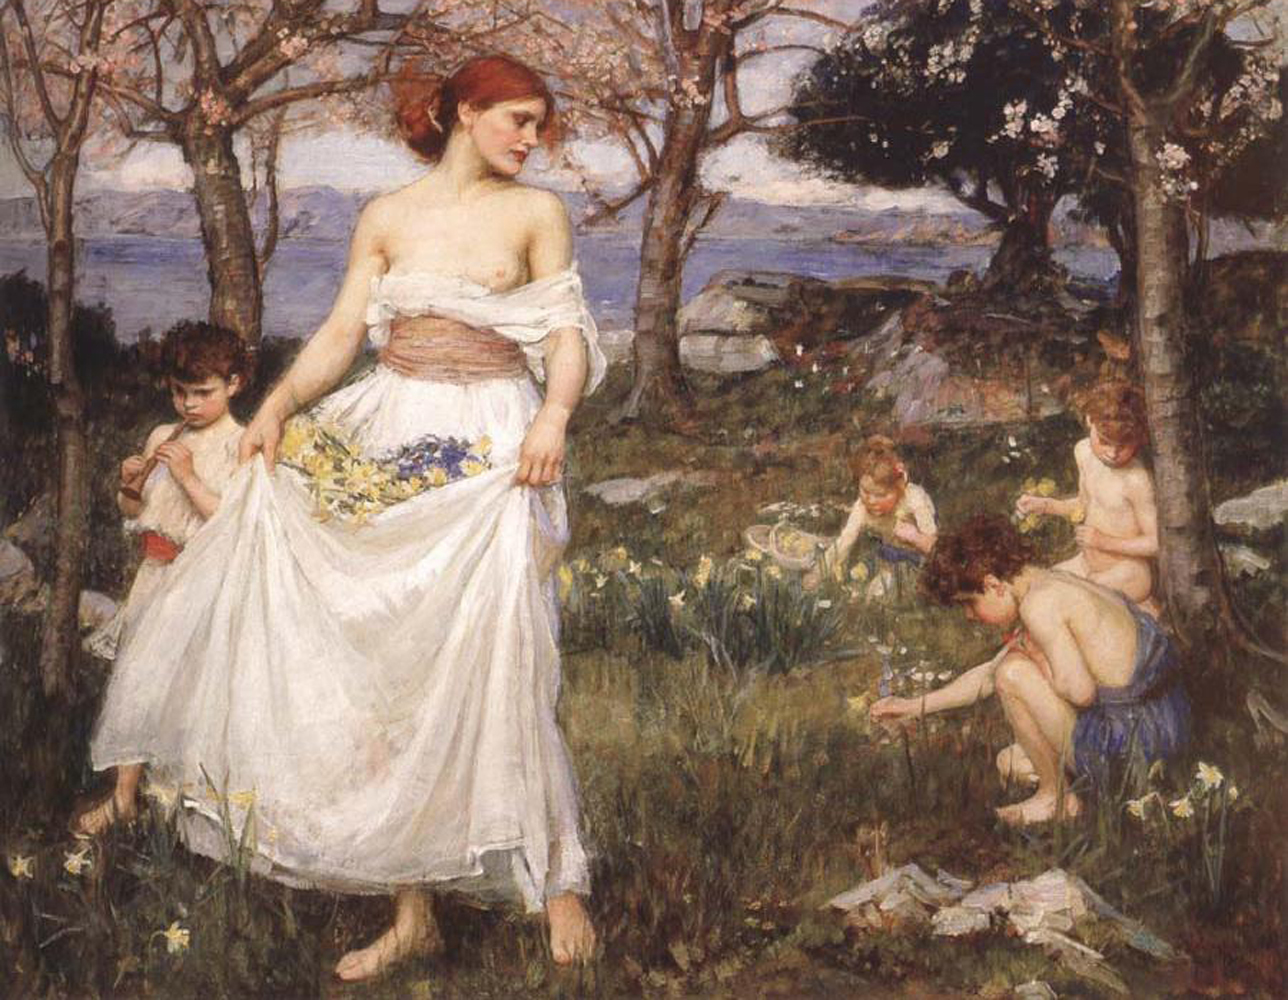 john_william_waterhouse_10_a_song_of_springtime.jpg